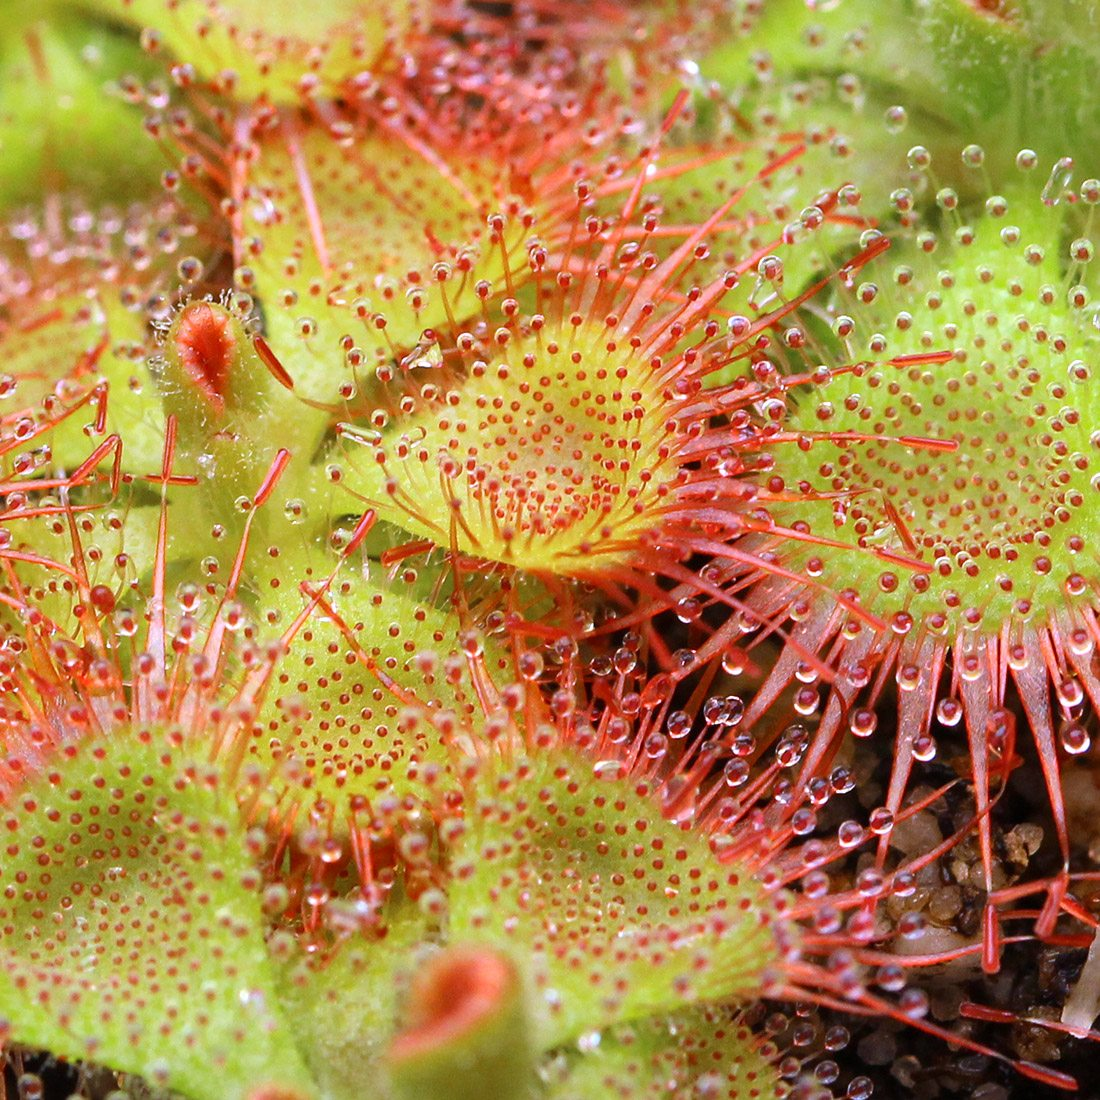 Drosera sessilifolia